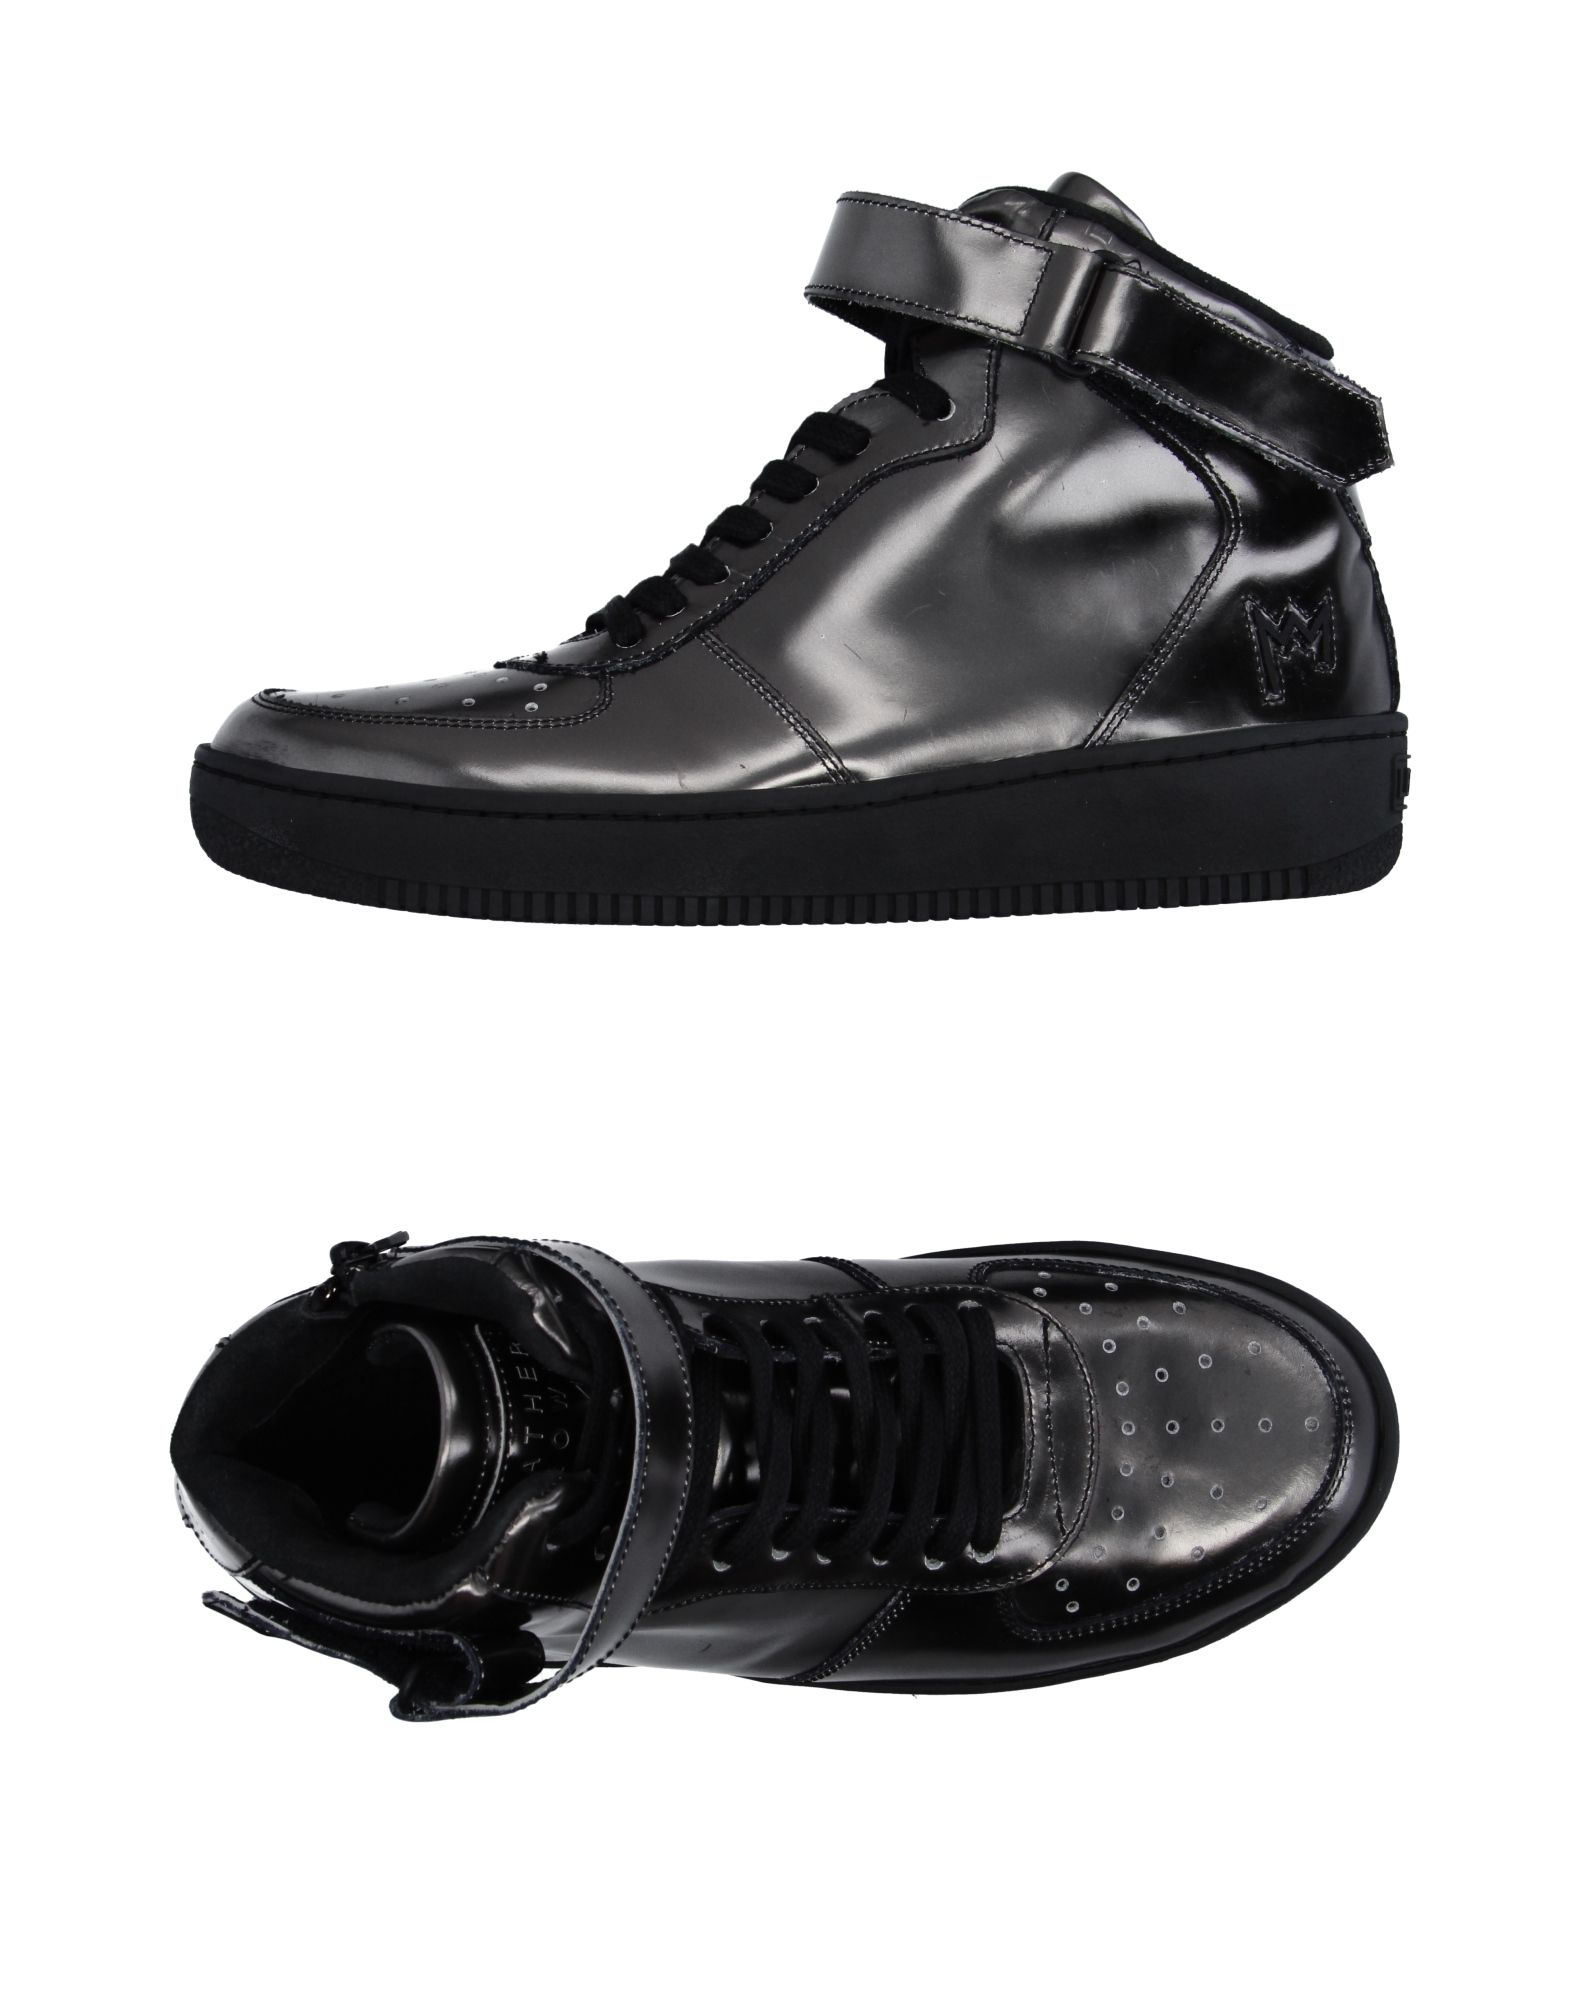 Leather Crown Sneakers Sneakers - Women Leather Crown Sneakers Sneakers online on  Canada - 11196286VX e0bb18